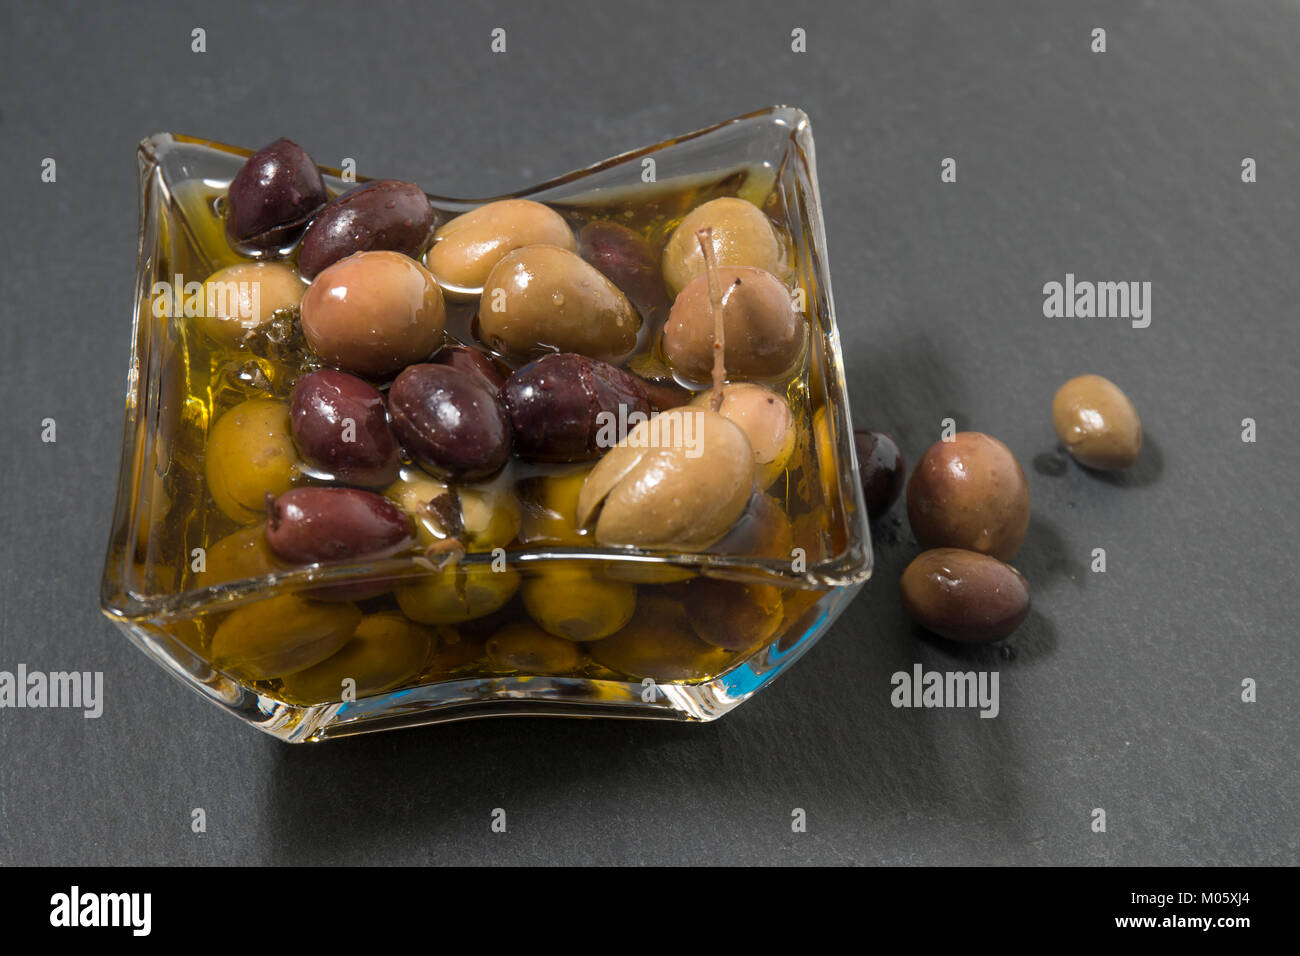 Olives with olive oil on a shale stone. - Stock Image